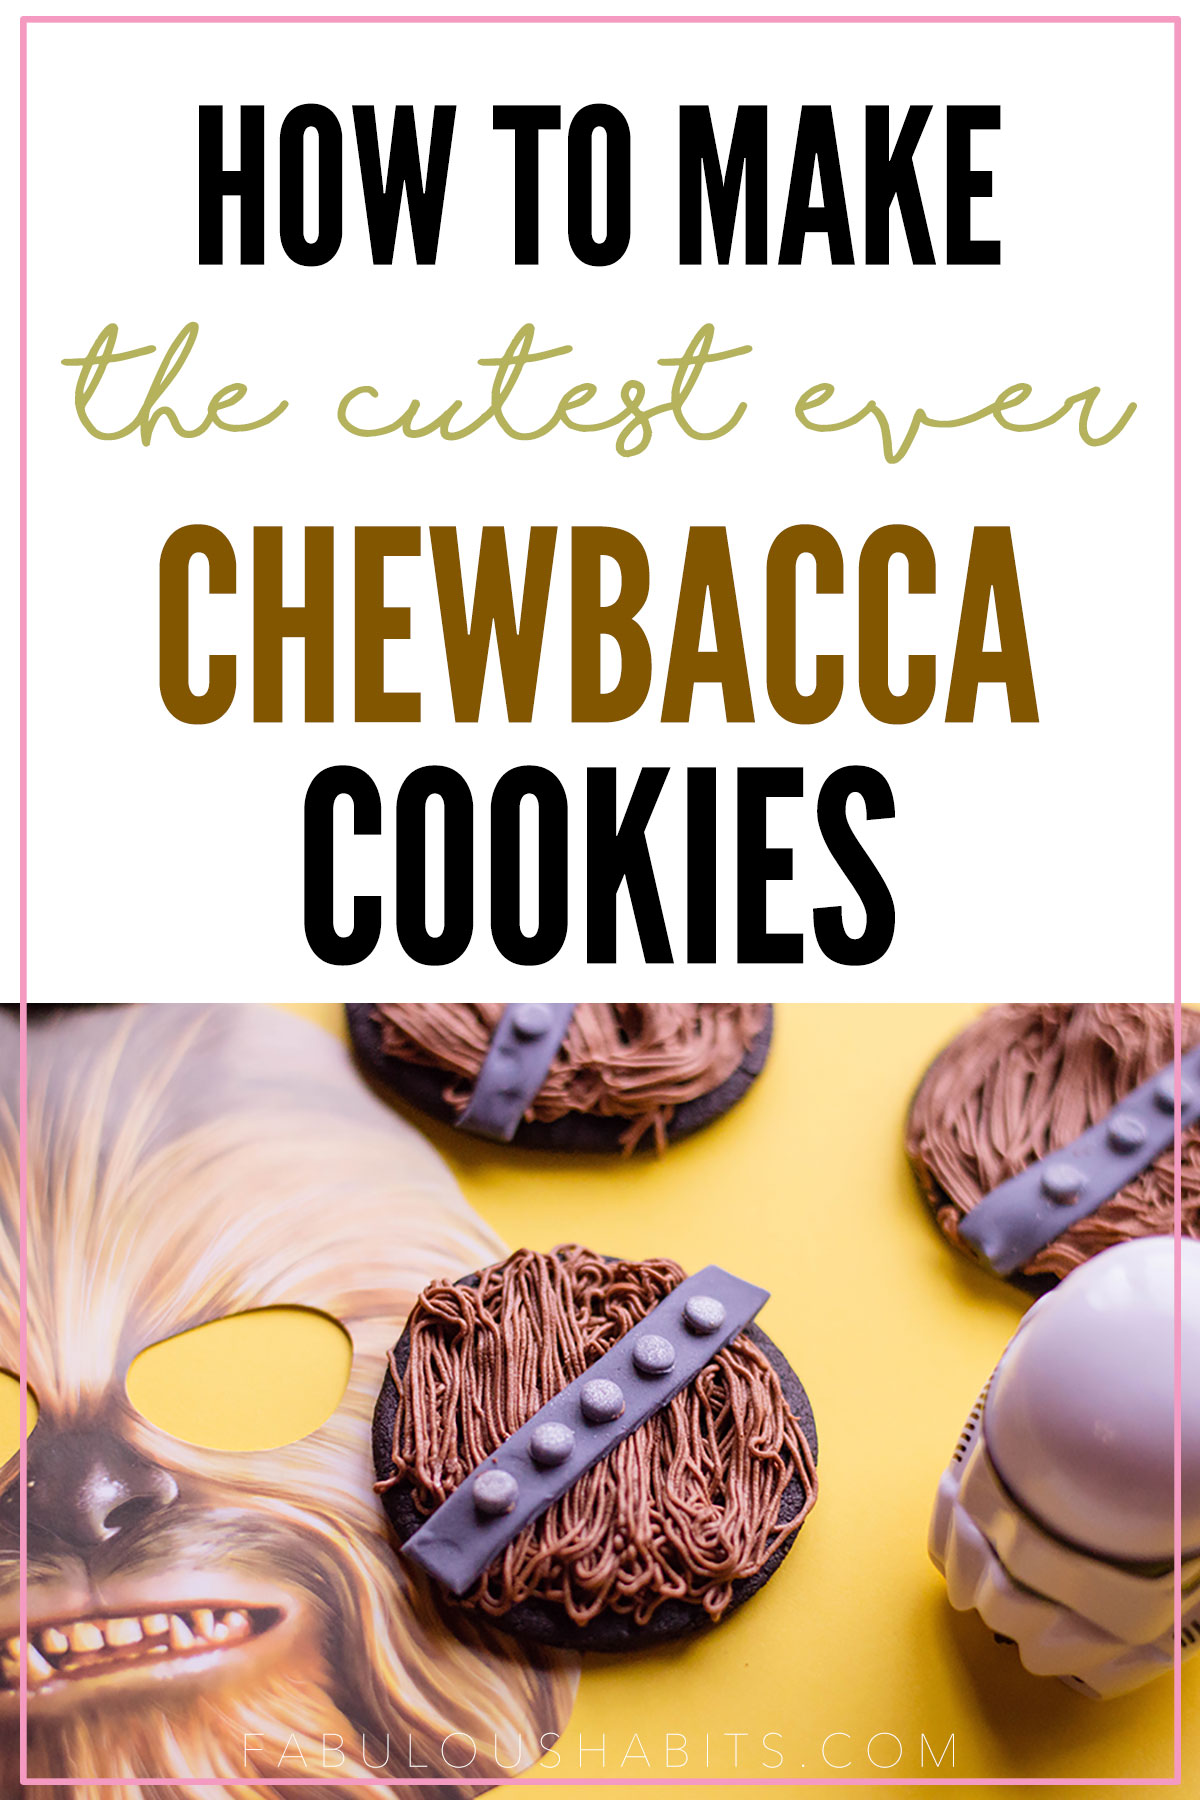 How to make Chewbacca cookies - Star Wars fans, you won't want to miss out on this recipe! #starwarsrecipes #starwarsparty